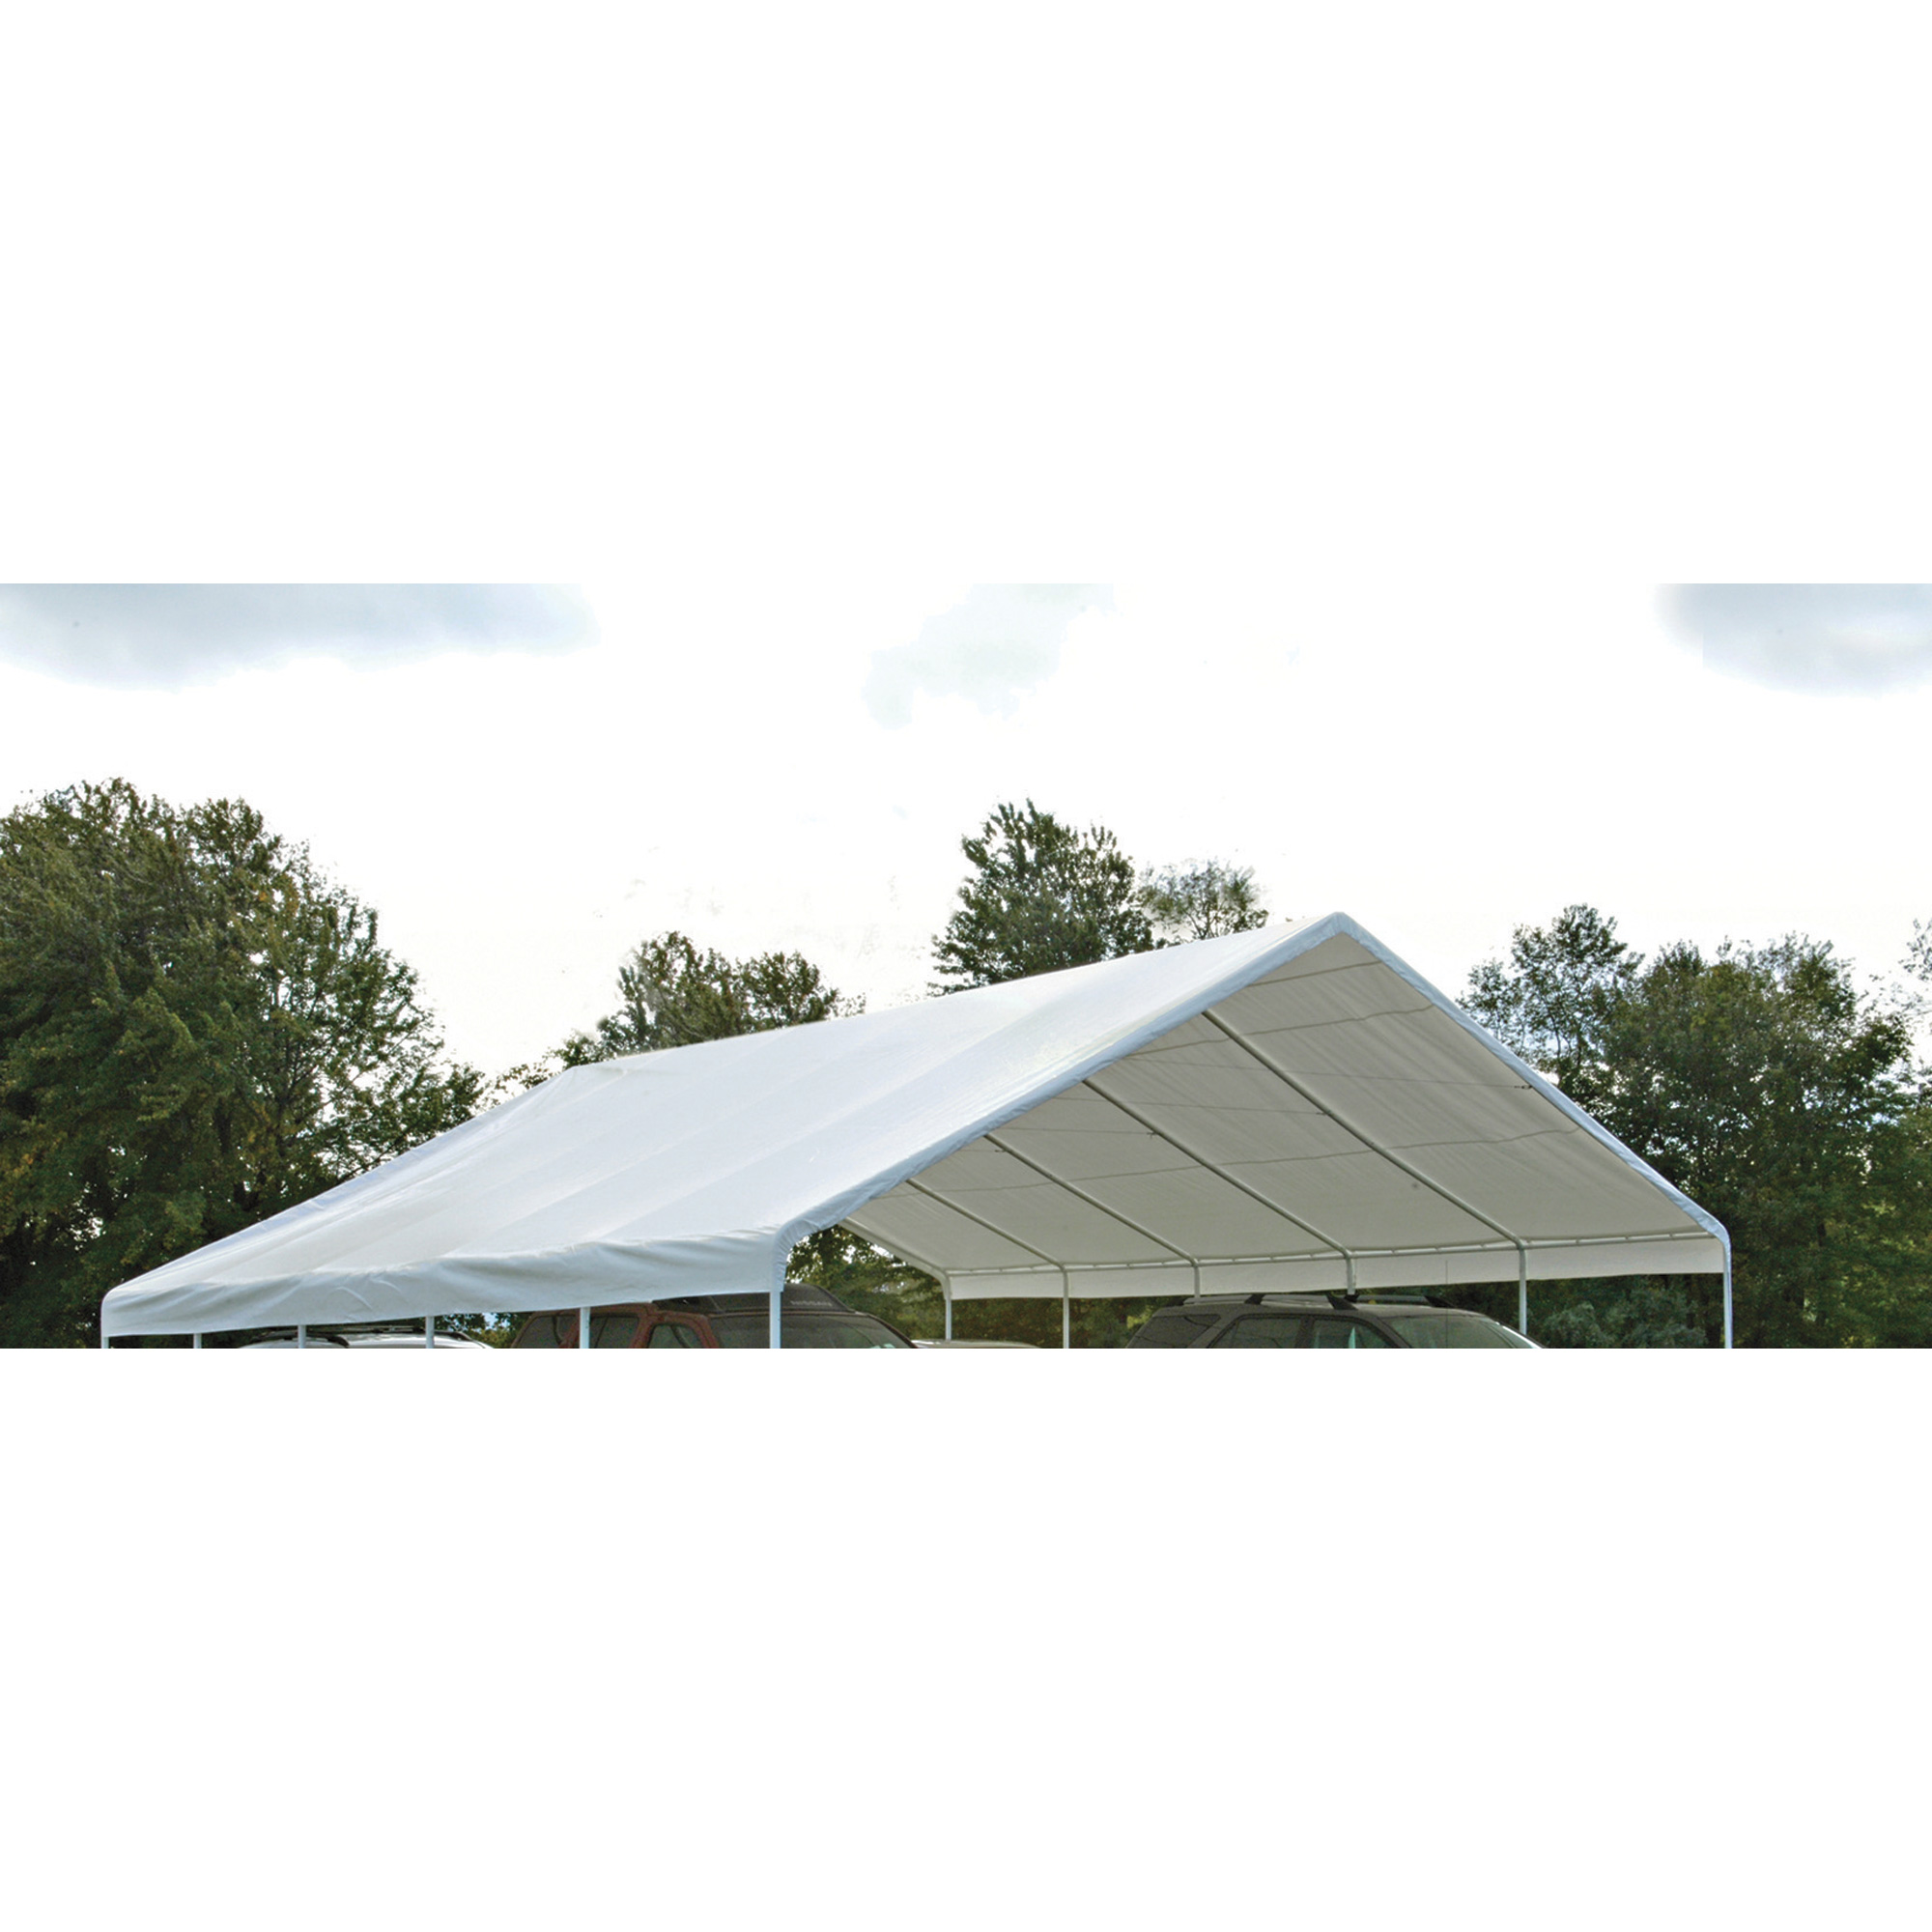 Shelterlogic Replacement Covers For Ultra Max 2 3 8in Frame Canopy Fits Item 252307 40ft L X 30ft W Outdoor Canopy Model 27779 Northern Tool